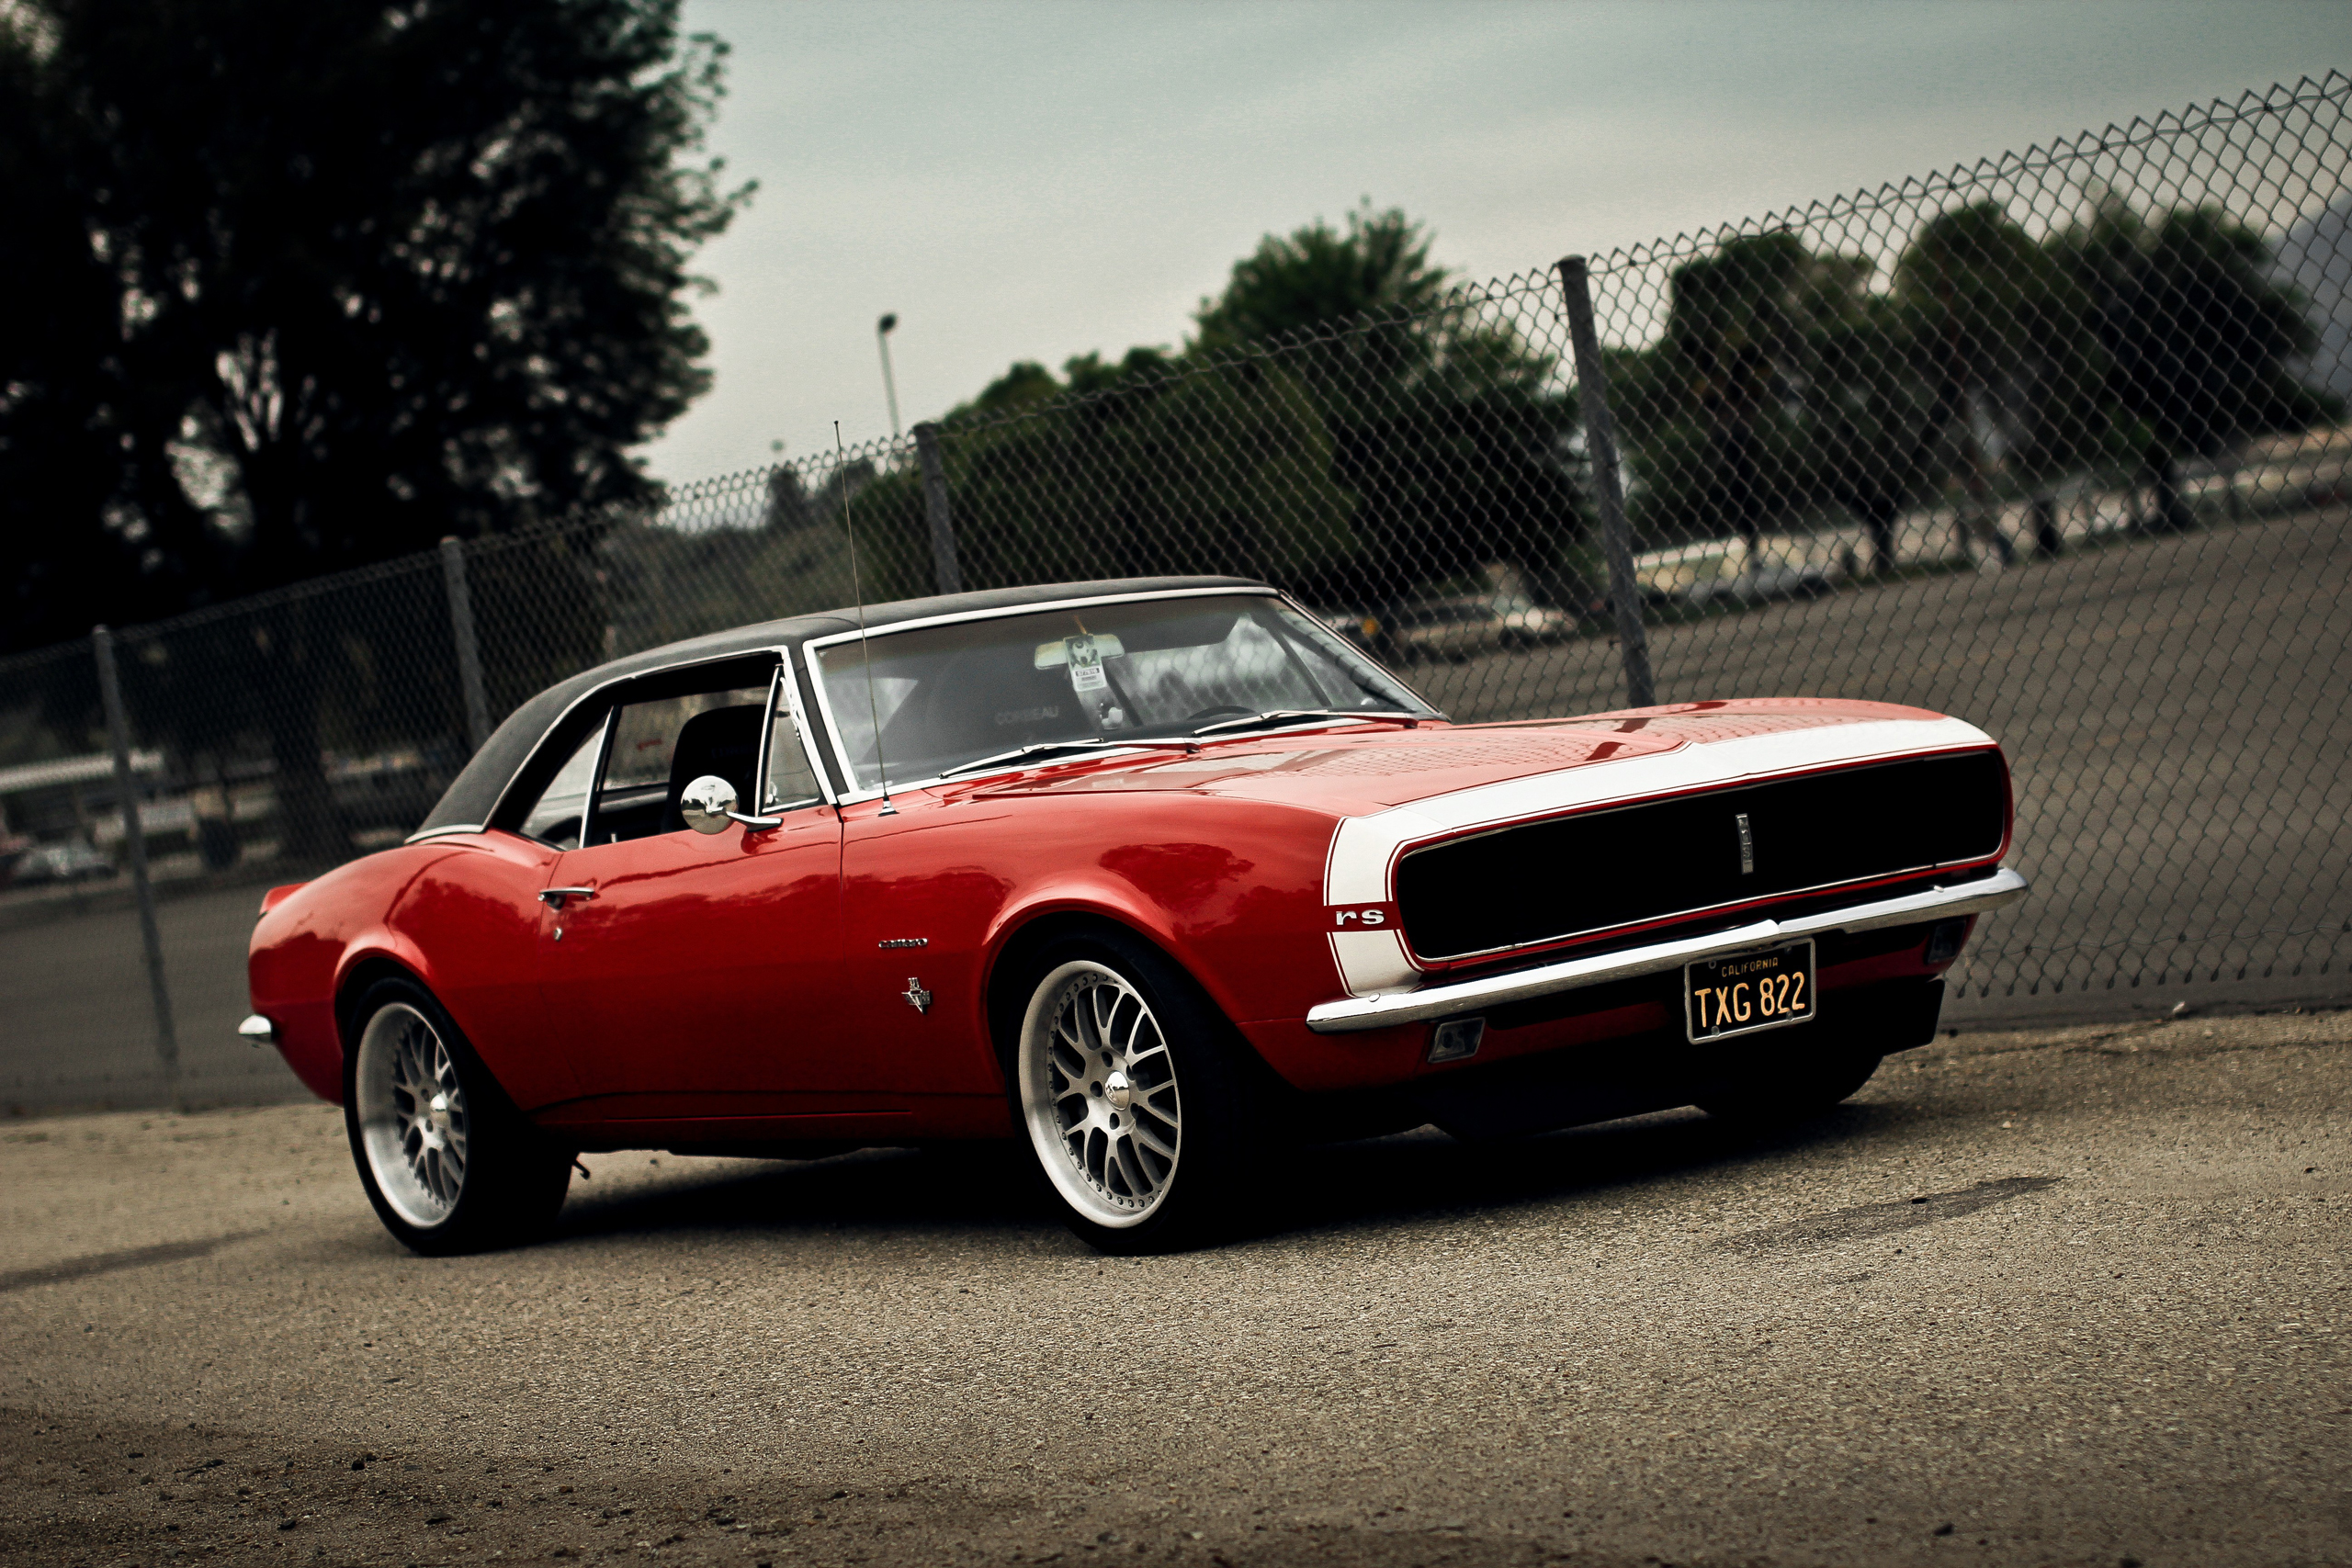 620 chevrolet camaro hd wallpapers | background images - wallpaper abyss